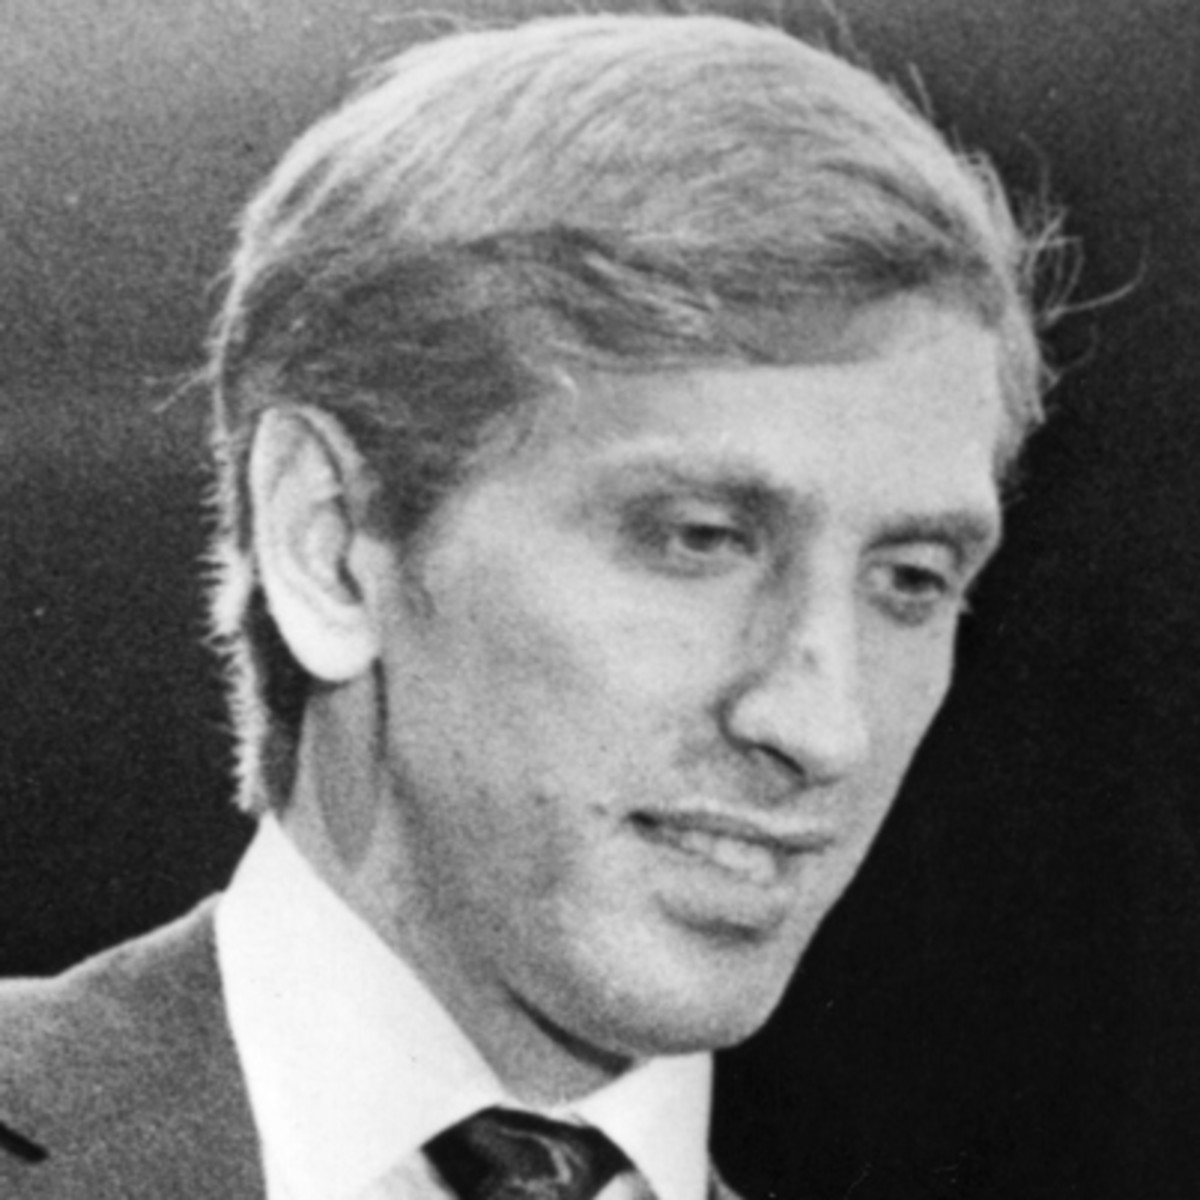 Bobby Fischer - Chess Player, Author - Biography